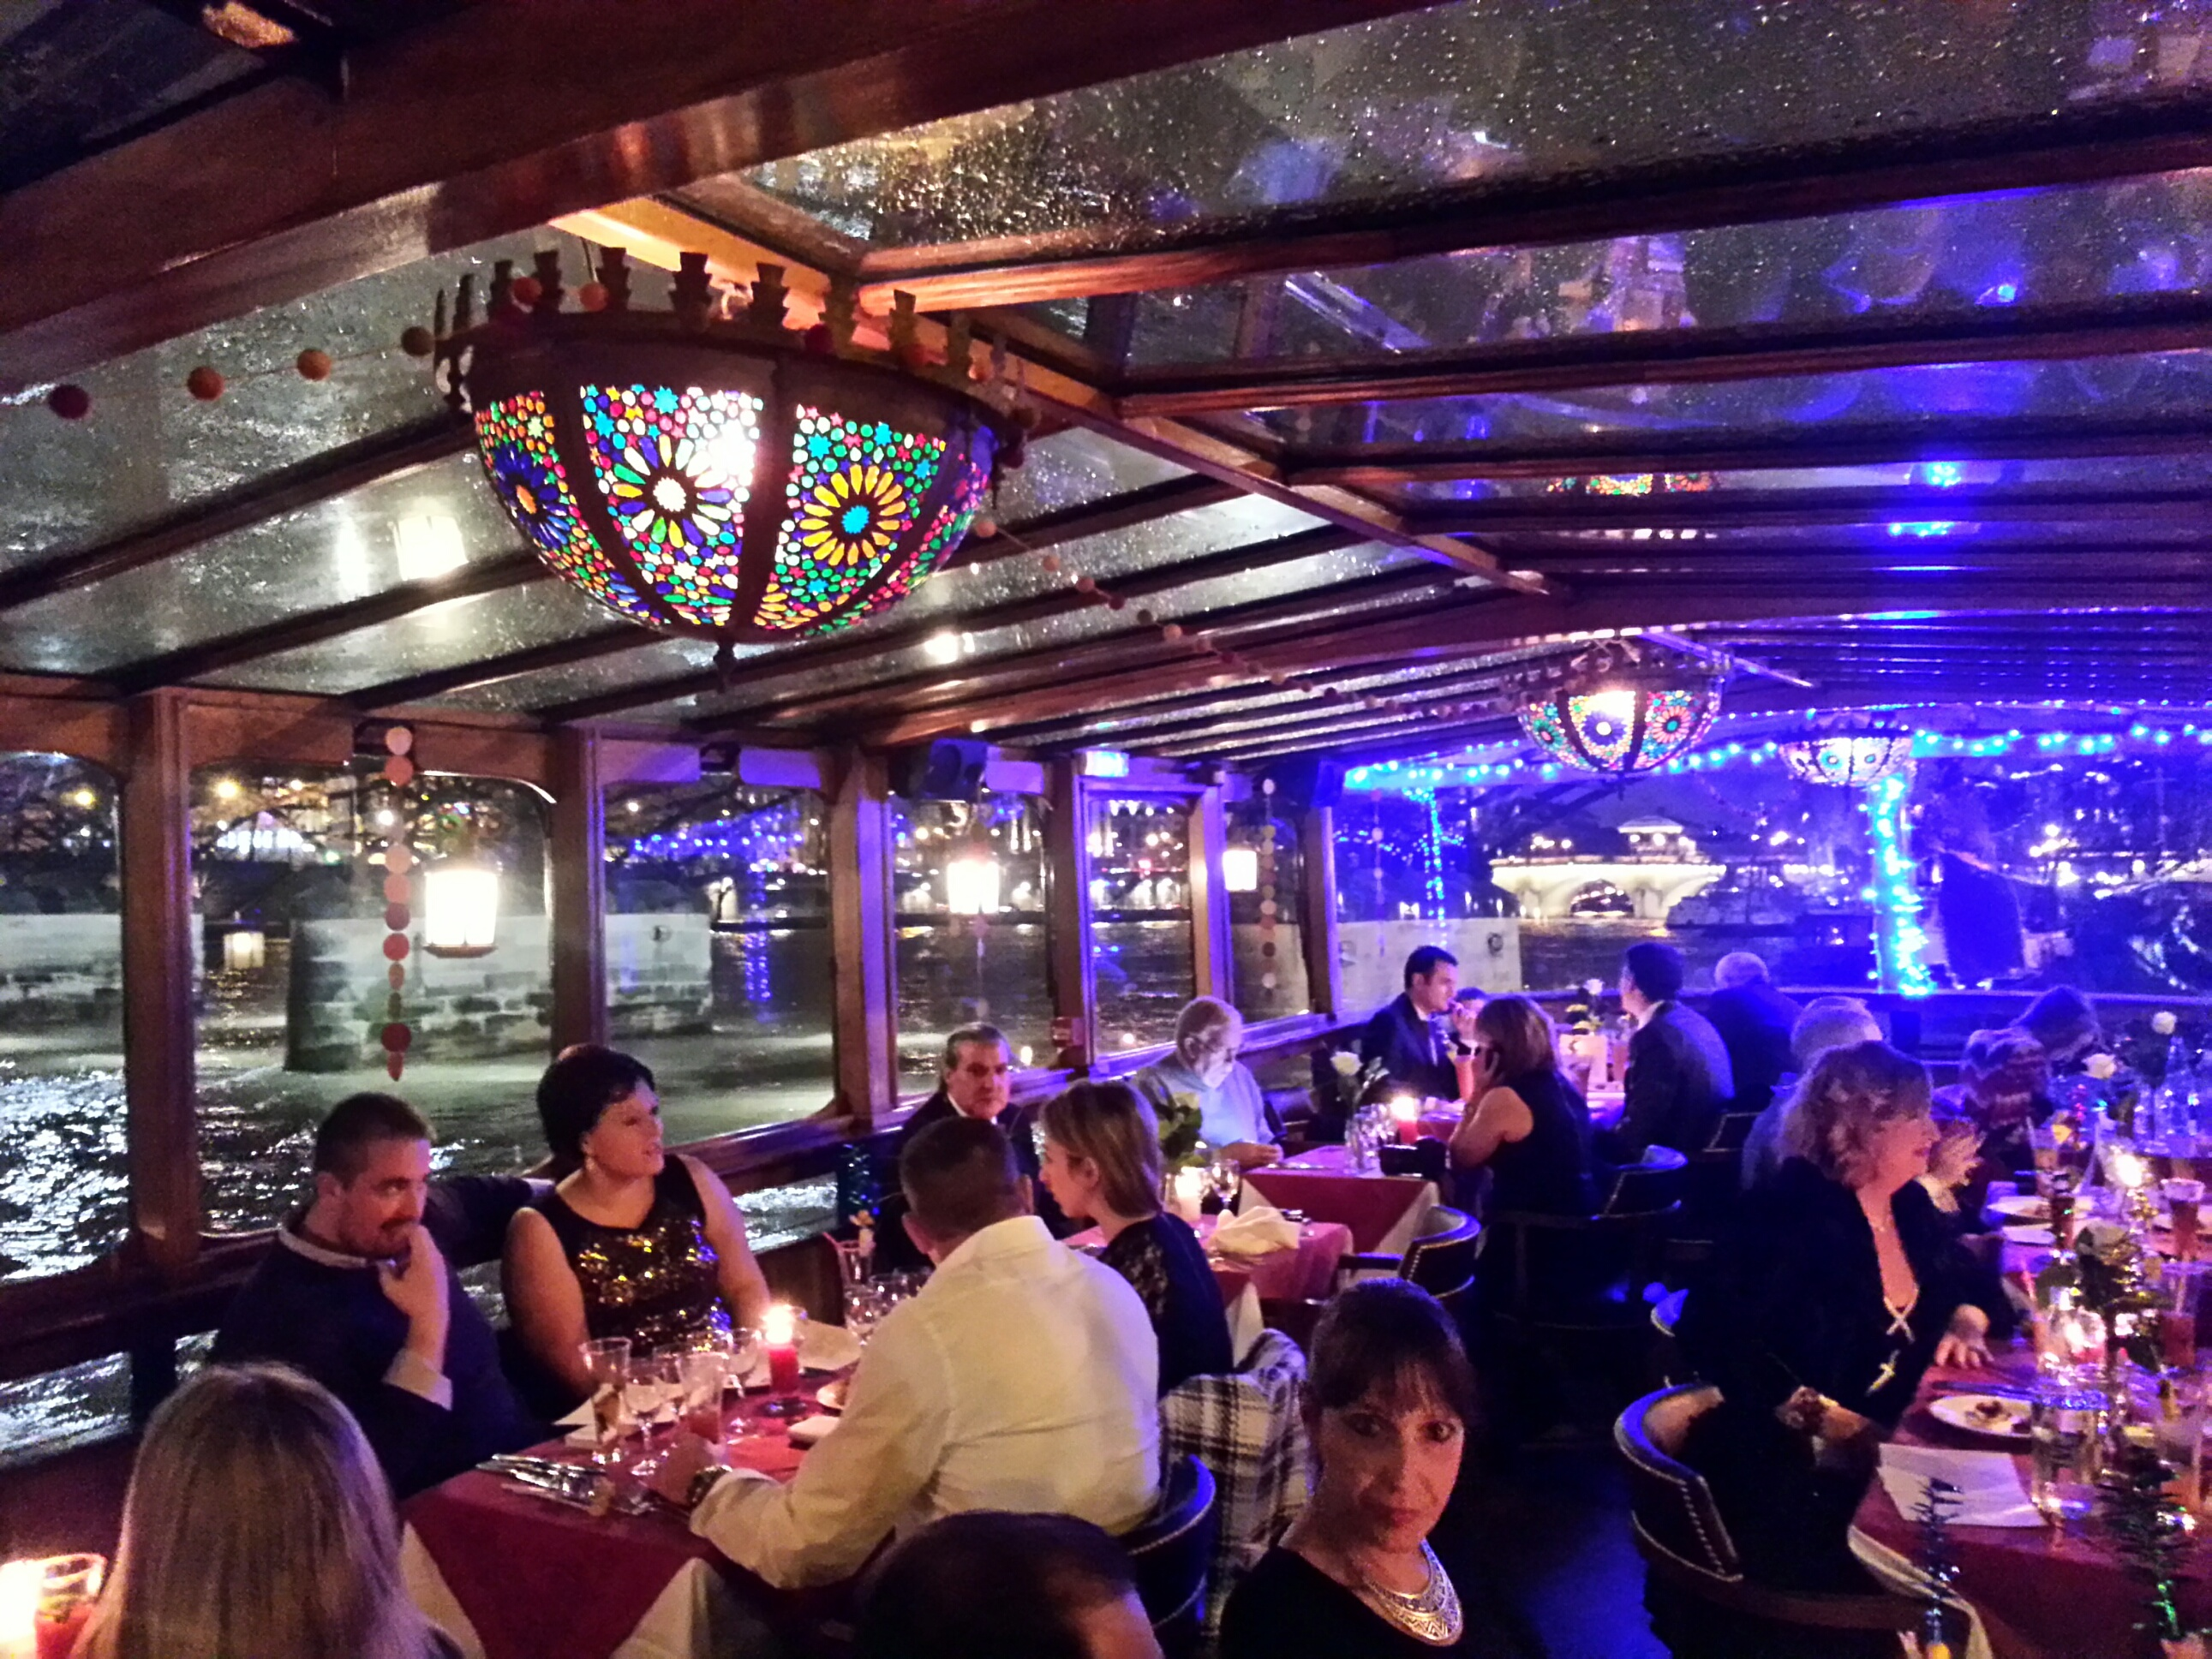 Le Calife - a glorious and and well lit dining expierence on the water